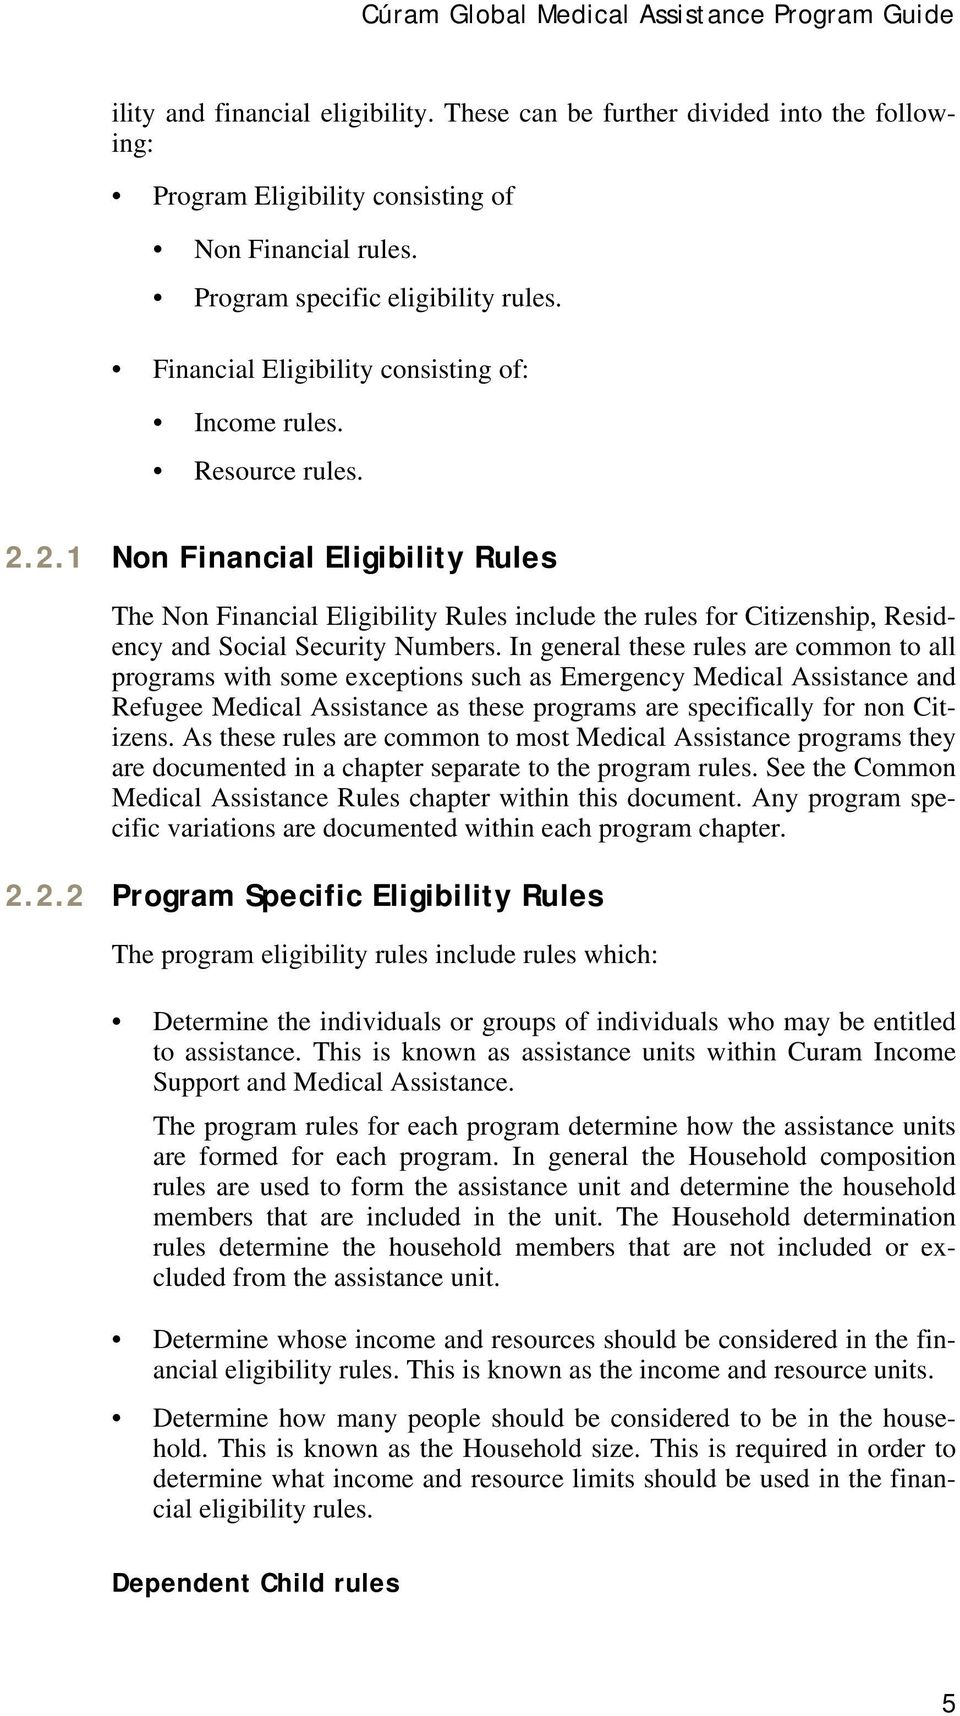 2.1 Non Financial Eligibility Rules The Non Financial Eligibility Rules include the rules for Citizenship, Residency and Social Security Numbers.